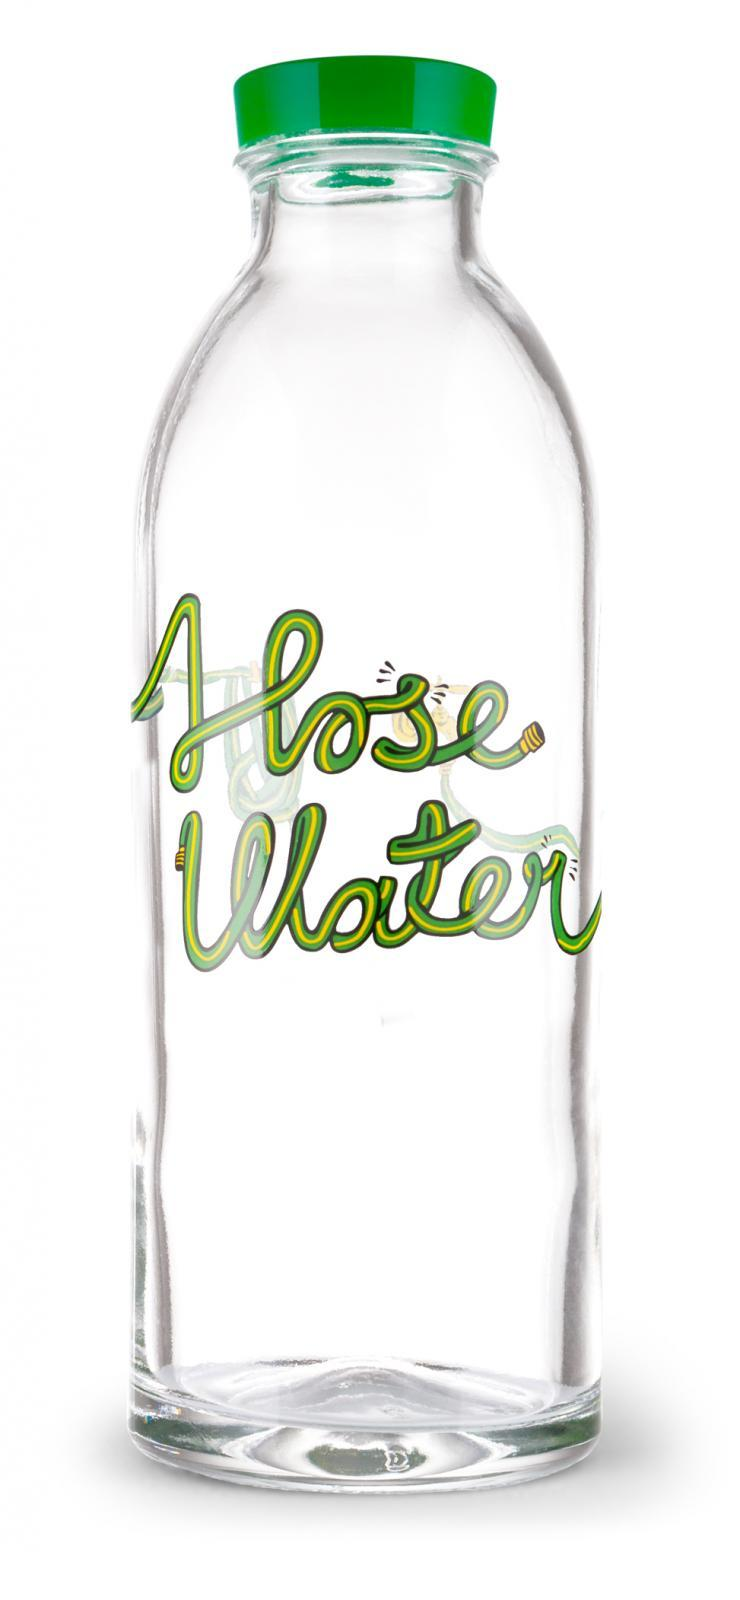 Hose Water Reusable Glass Water Bottle By Faucet Face, 14.4 oz